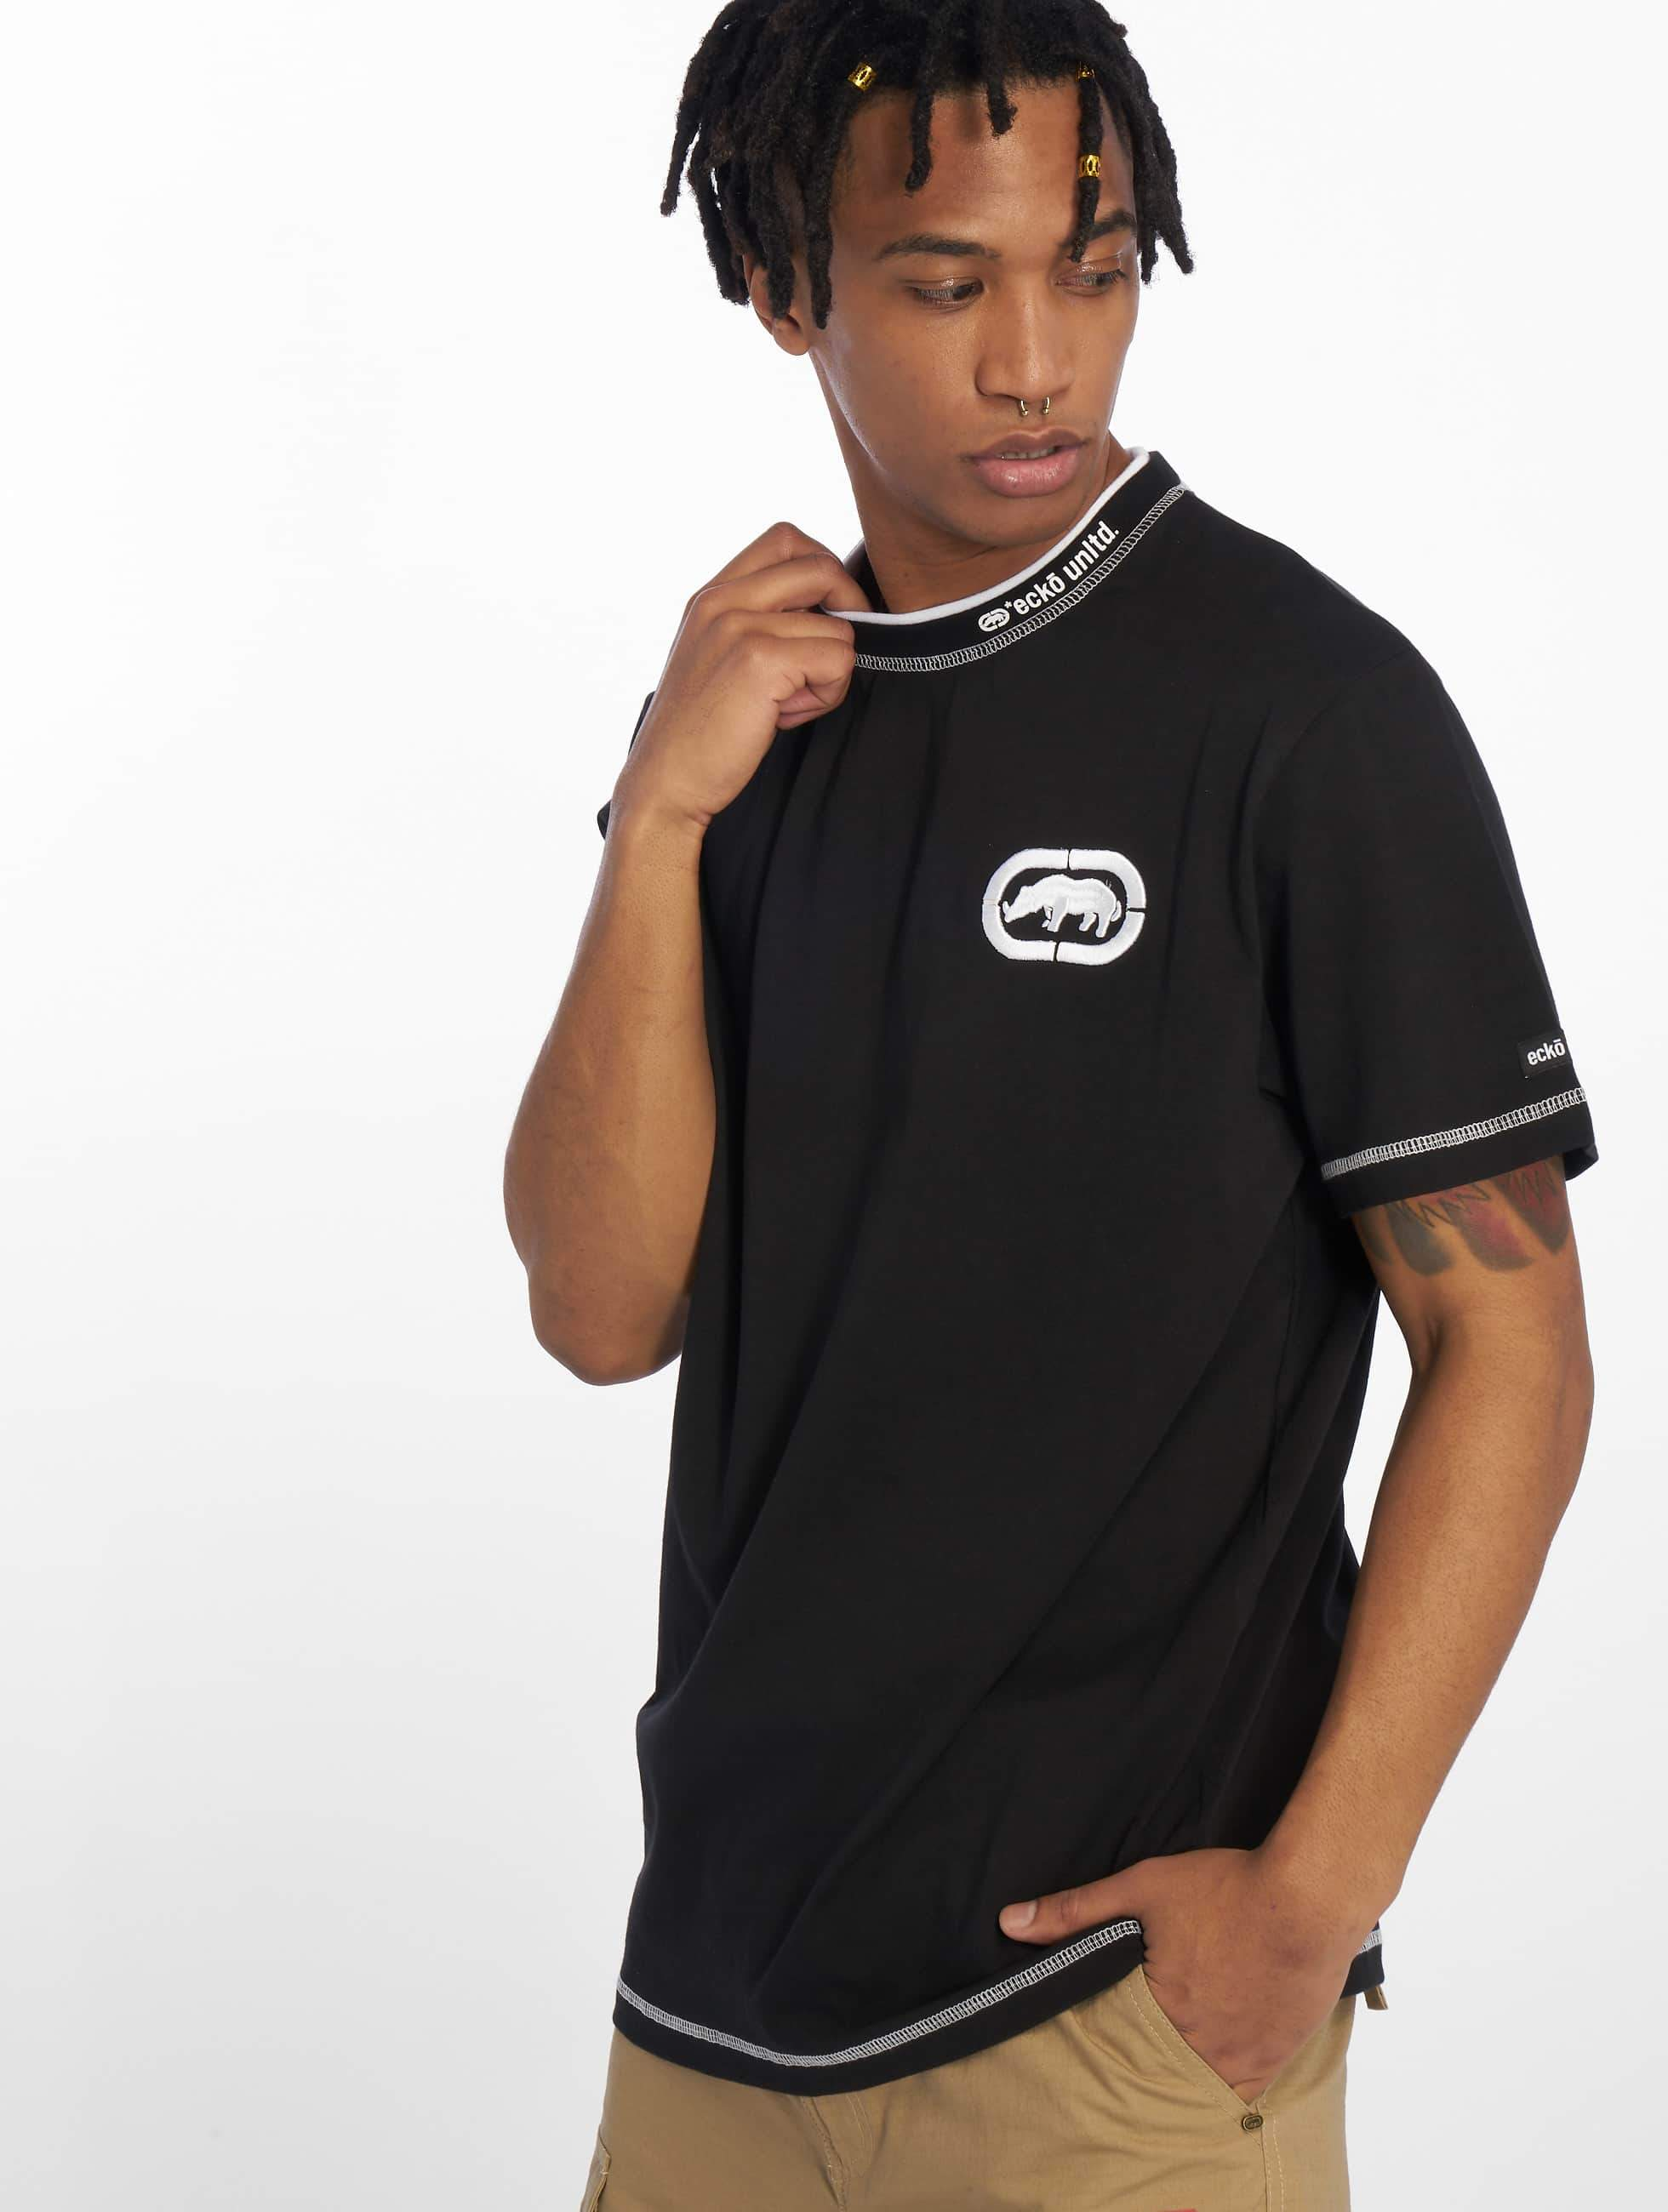 Ecko Unltd. / T-Shirt Far Rockaway in black S